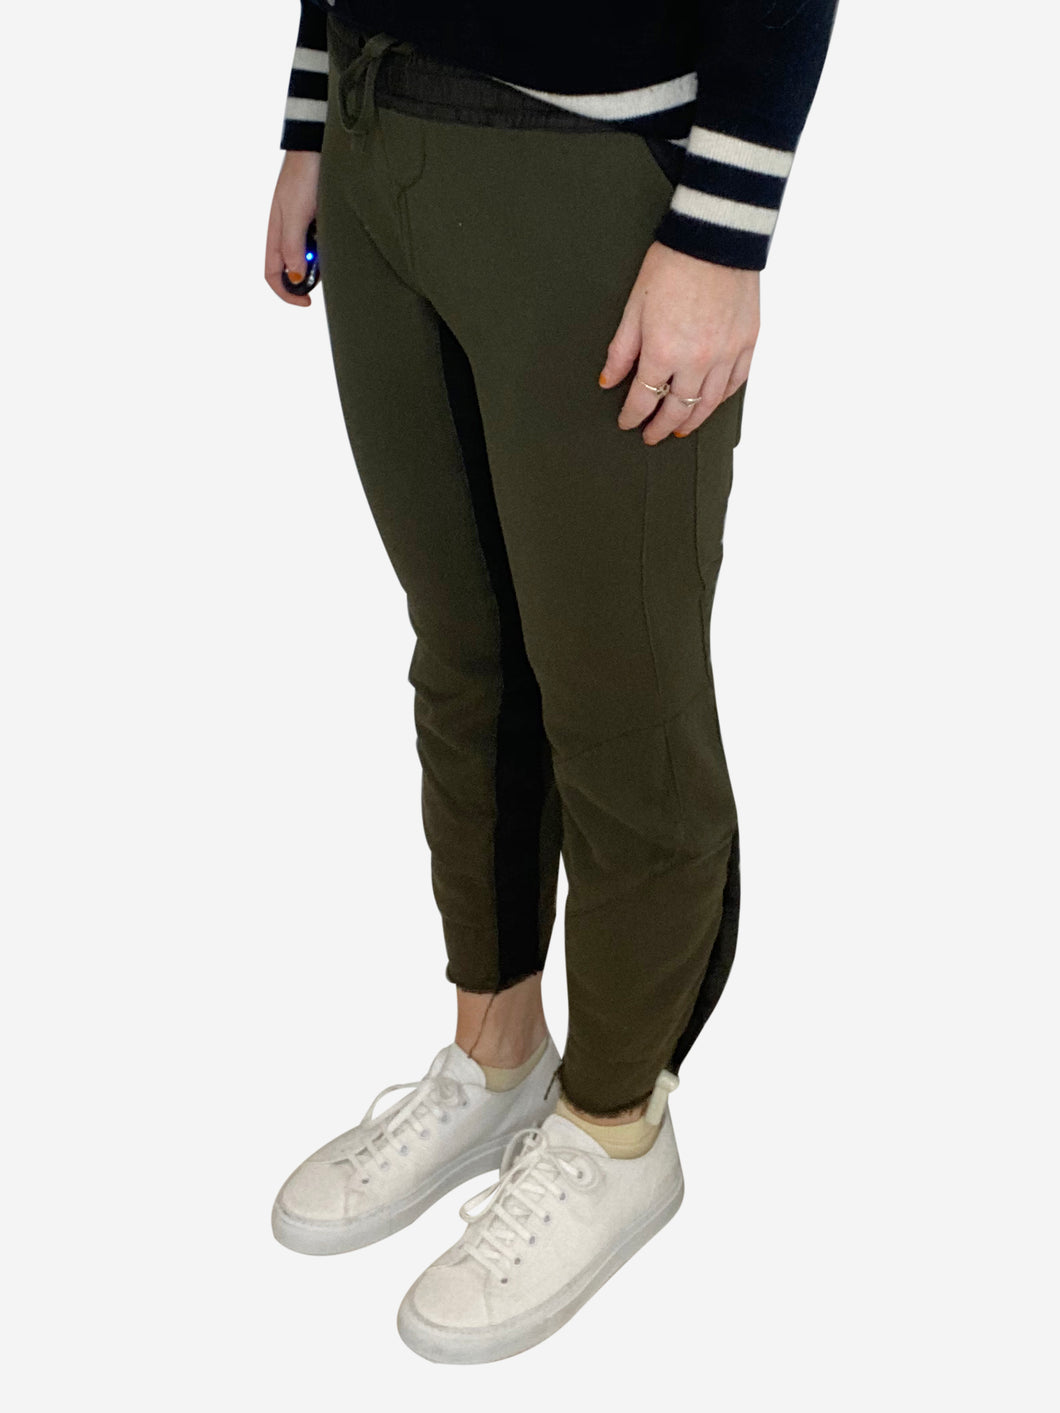 Khaki jogging bottoms - size XS